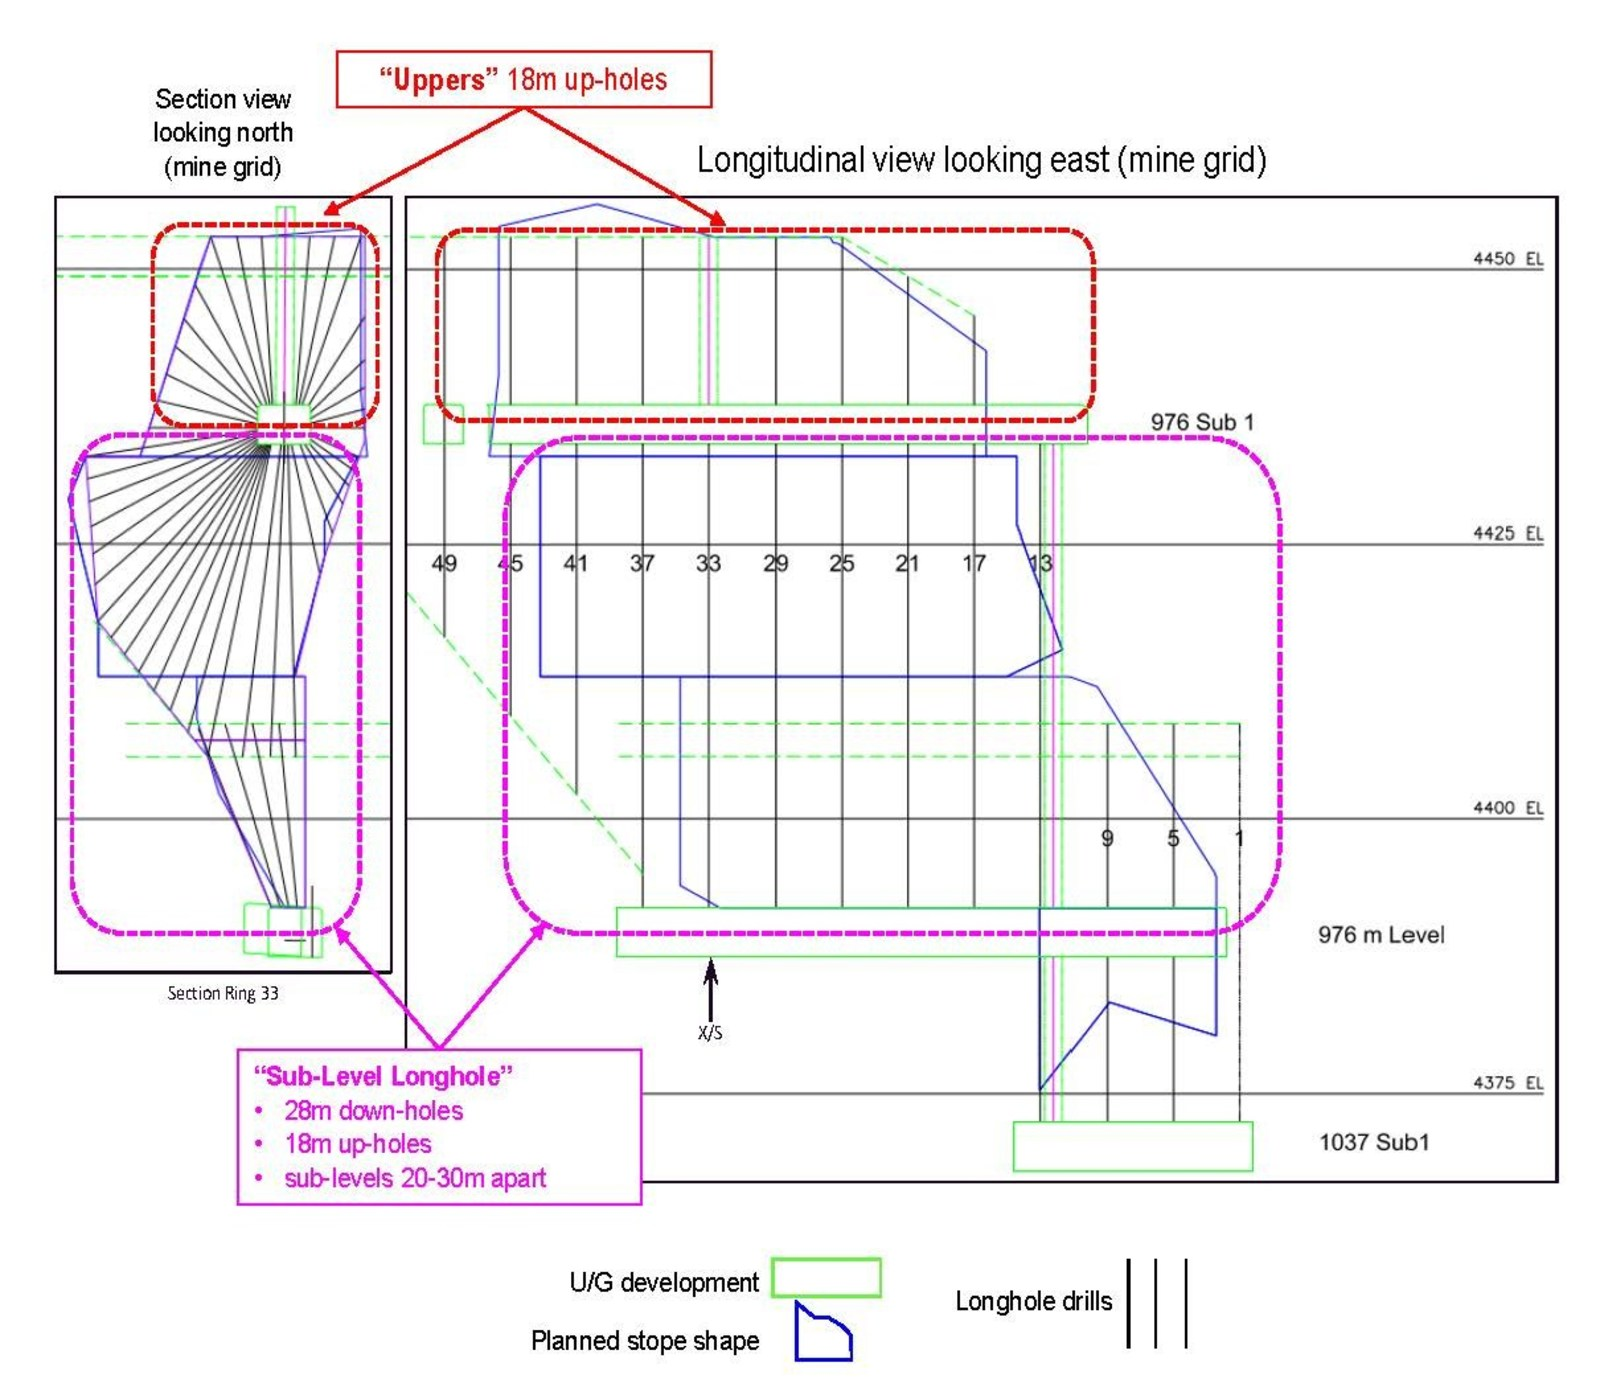 Diagram 3: Conceptual diagram of Sub-Level Longhole and Uppers mining methods